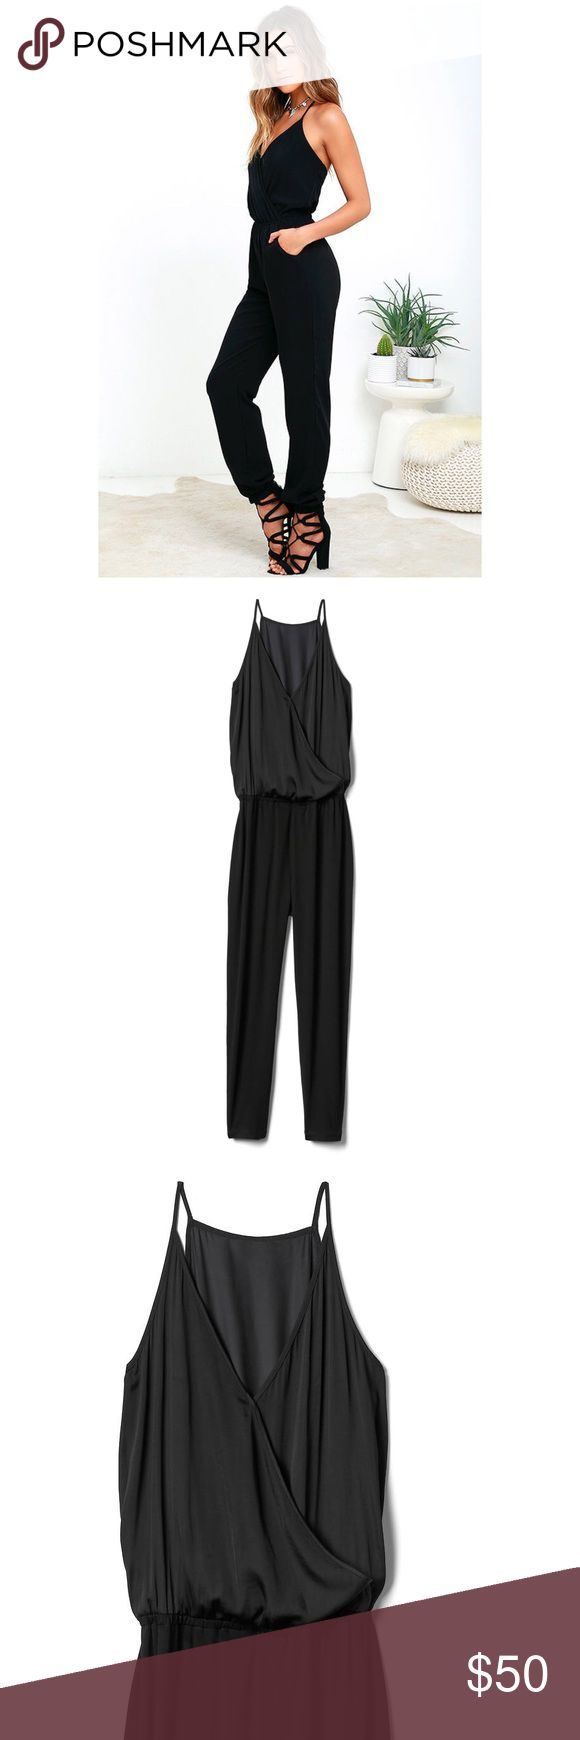 "Gap Wrap Jumpsuit Black Must have this summer. 5 stars rating Gap jumpsuit. Straight silhouette with a cinched waist. Skinny leg opening that skims the ankle. Inseam: regular 27"", tall 31"".  Soft jersey knit.Spaghetti straps. V-neck overlaps in front, hidden snap closure Elasticized waist. Photo # 6, 7, NOT actual item.  96% Rayon, 4% Spandex. Machine wash. No trades. Reasonable offers welcome. GAP Pants Jumpsuits & Rompers"